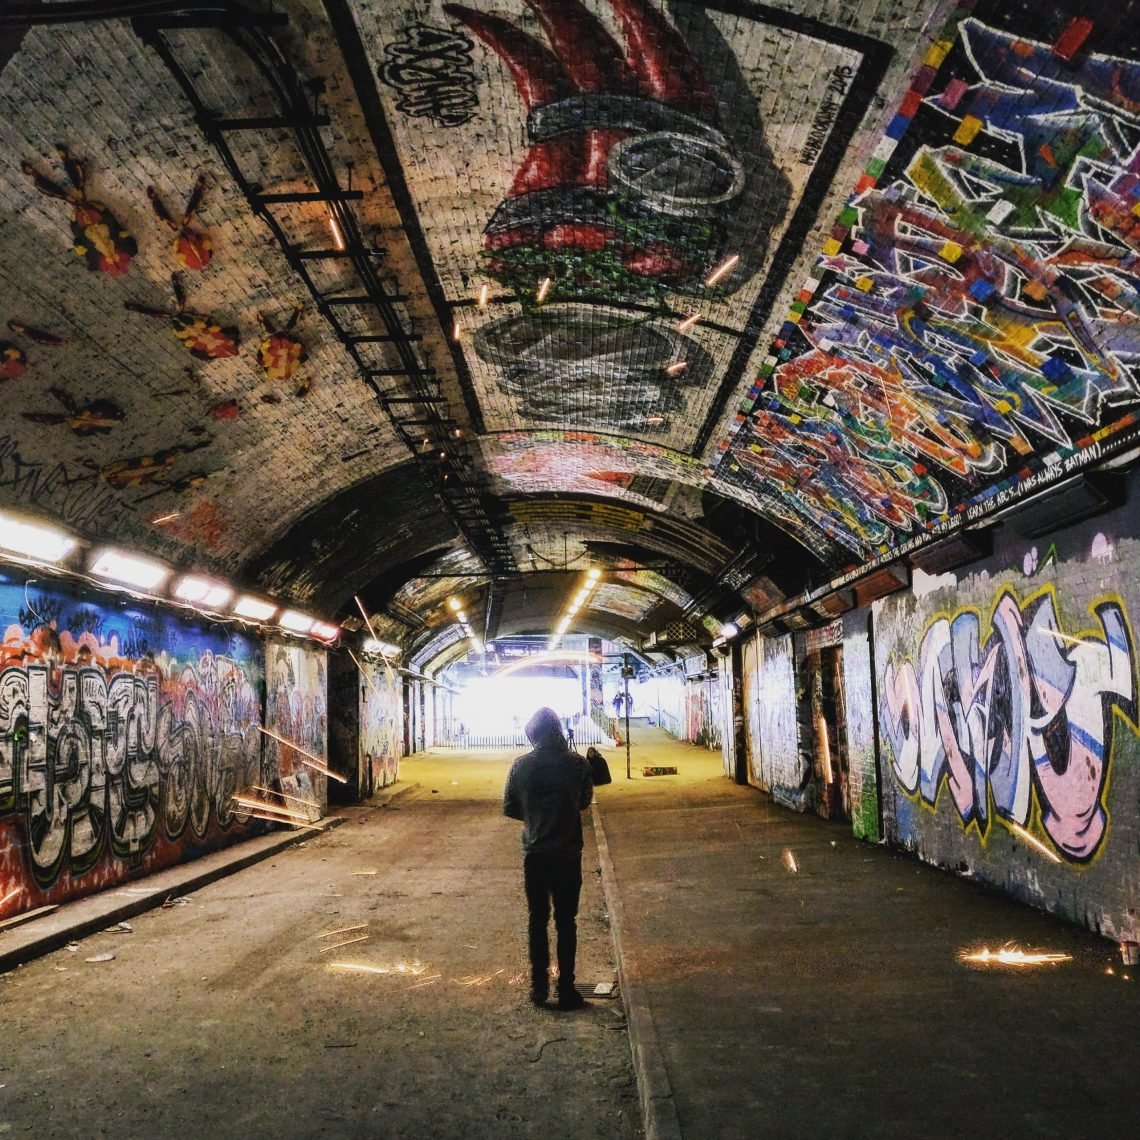 The Leake Street Tunnel in Waterloo is a great place to find graffiti in London